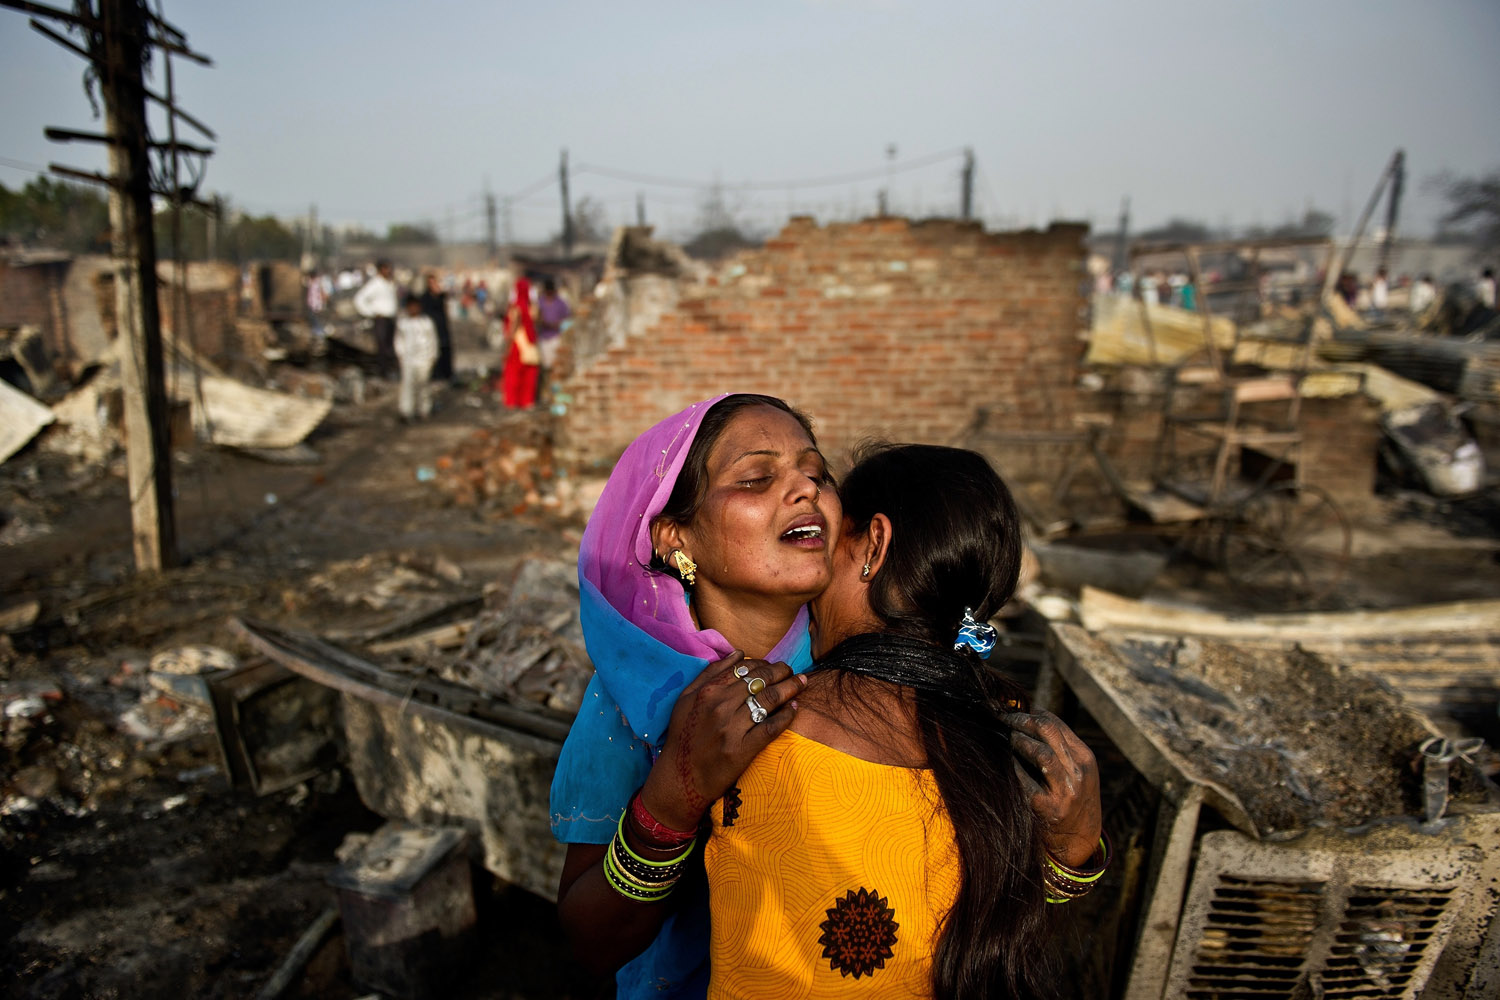 April 12, 2013. Indian slum residents weep as they stand near their burnt shanty in Bawana on the outskirts of New Delhi. A fire broke out in a slum on the outskirts of New Delhi, a local report said, with one person reported dead and another five injured.